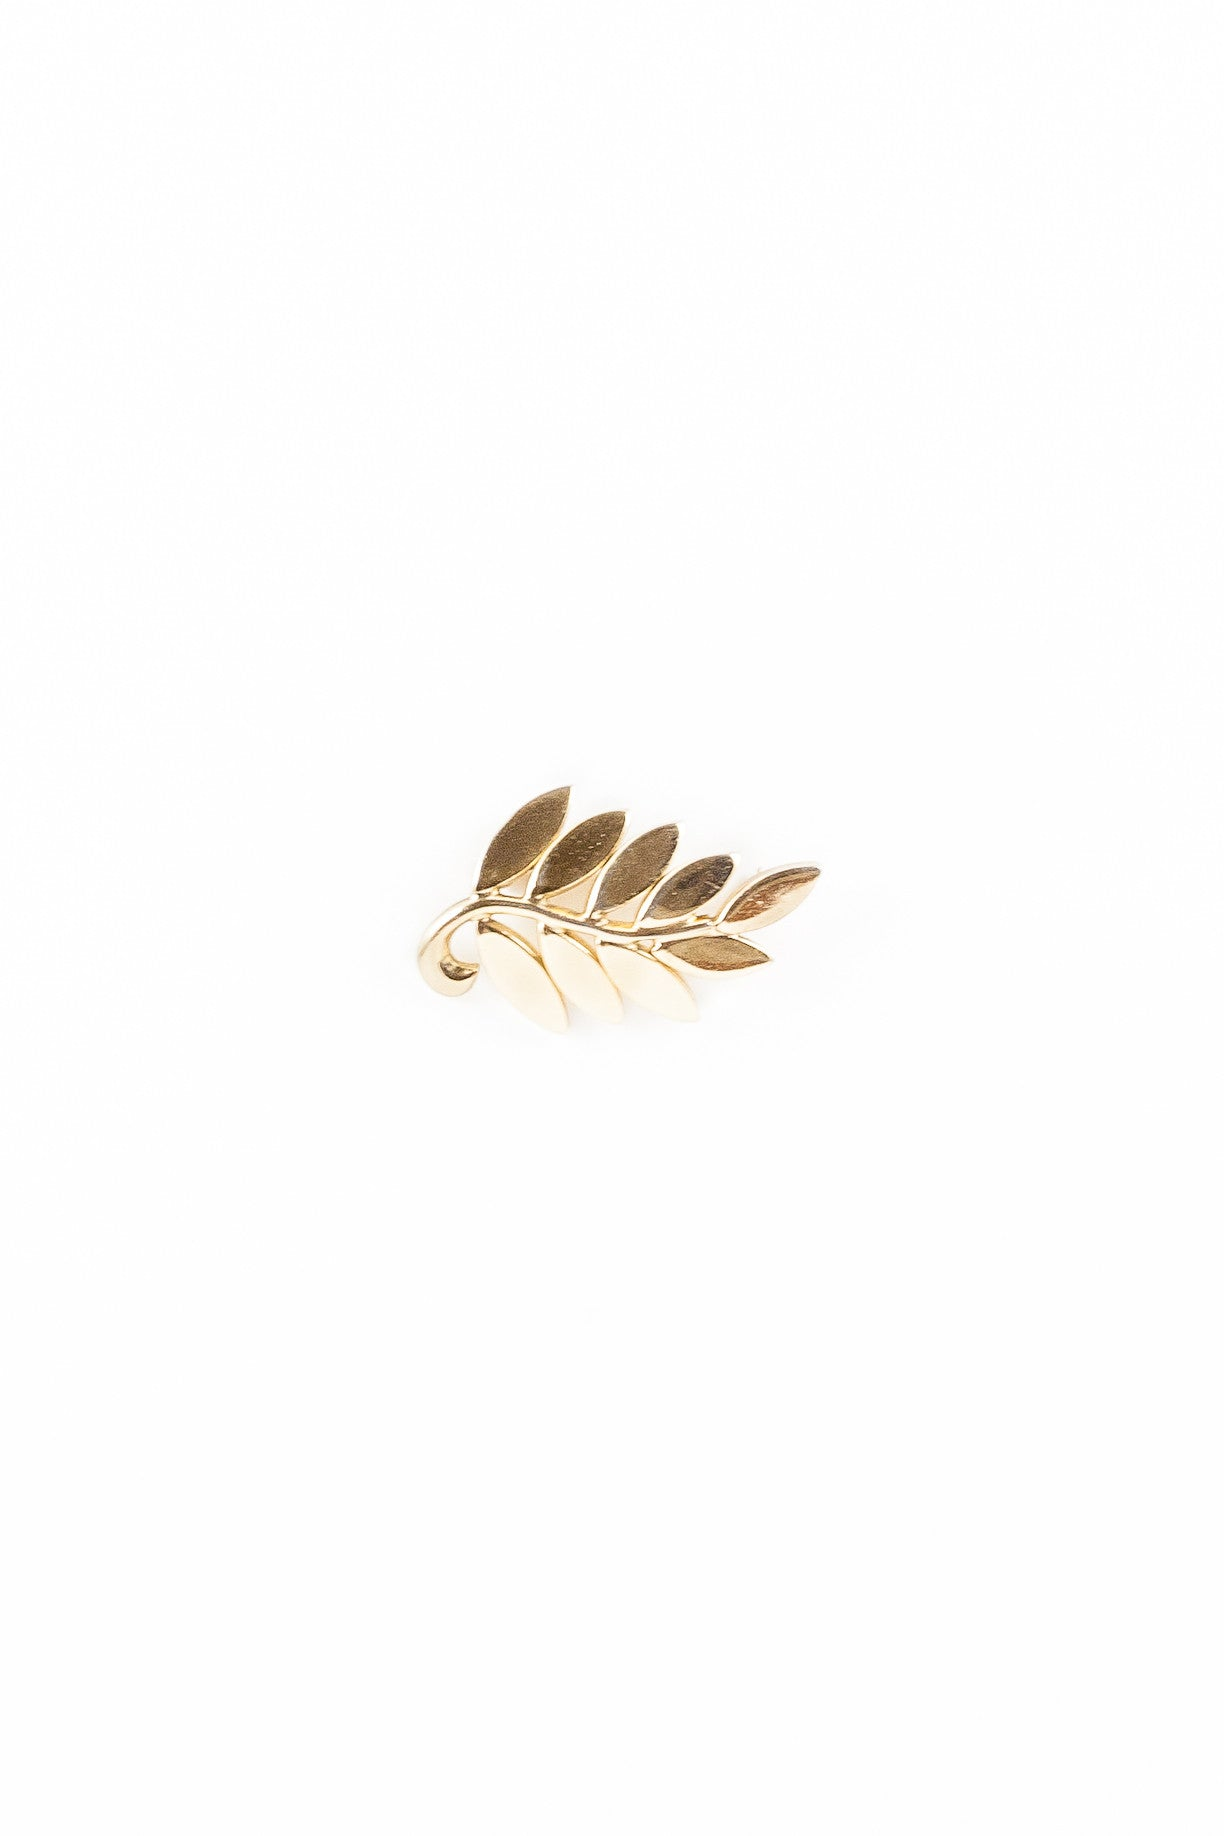 40s__Monet__Mini Leaf Pin